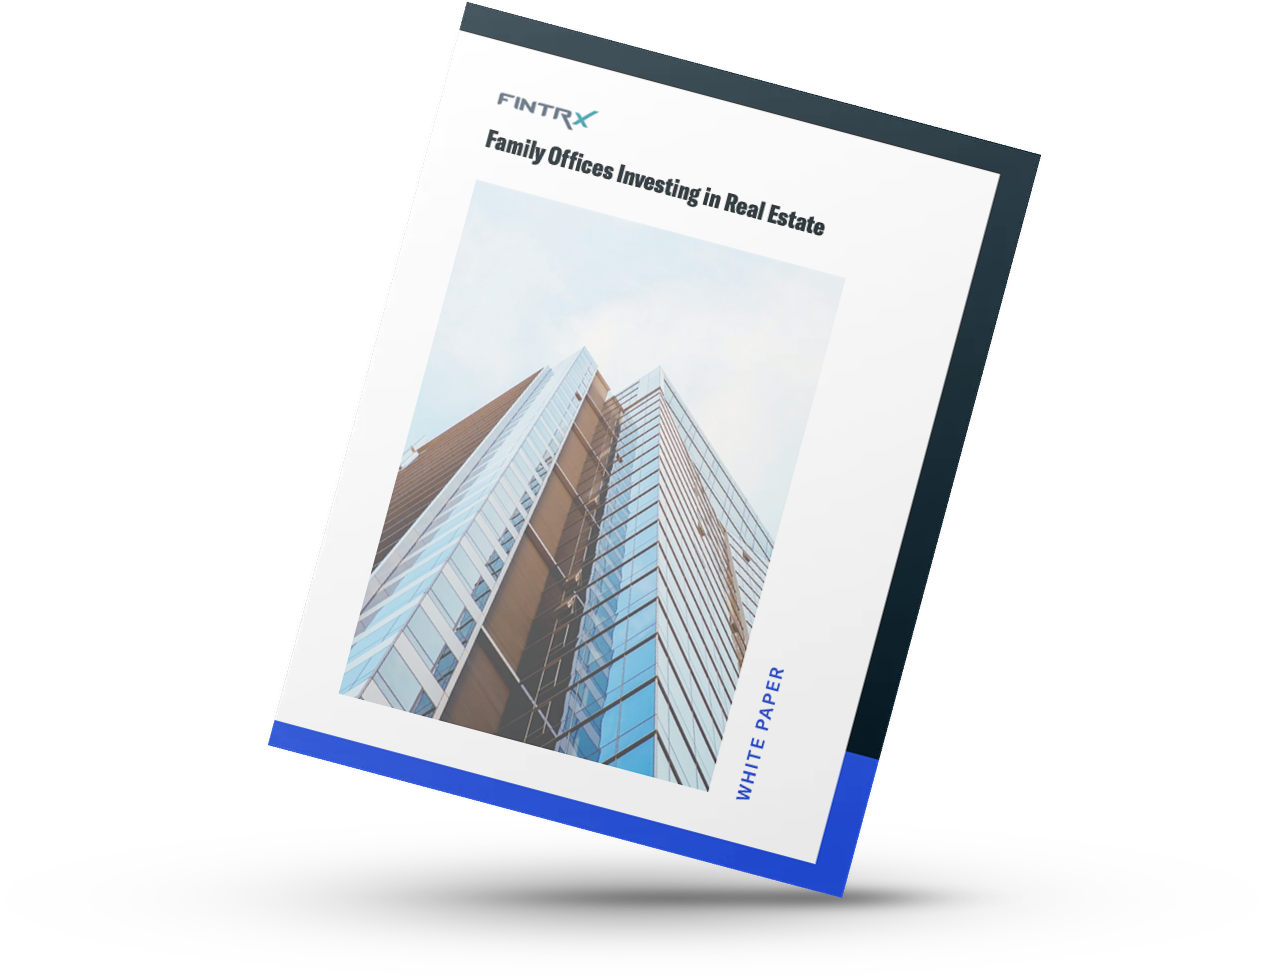 Family Offices Investing in Real Estate: White Paper